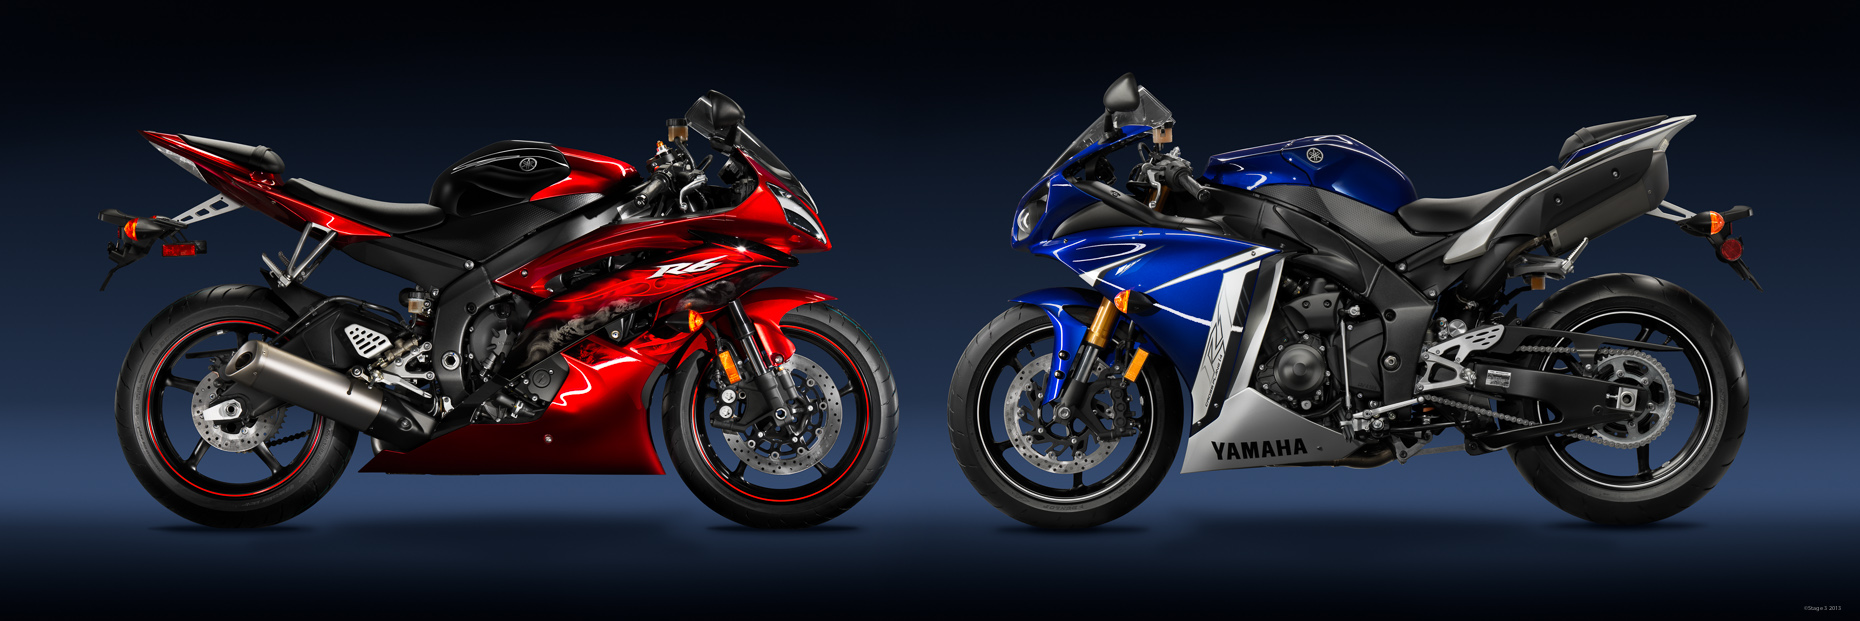 Stage3_Retouching_Yamaha R6 R1 Red_and blue front to front.jpg